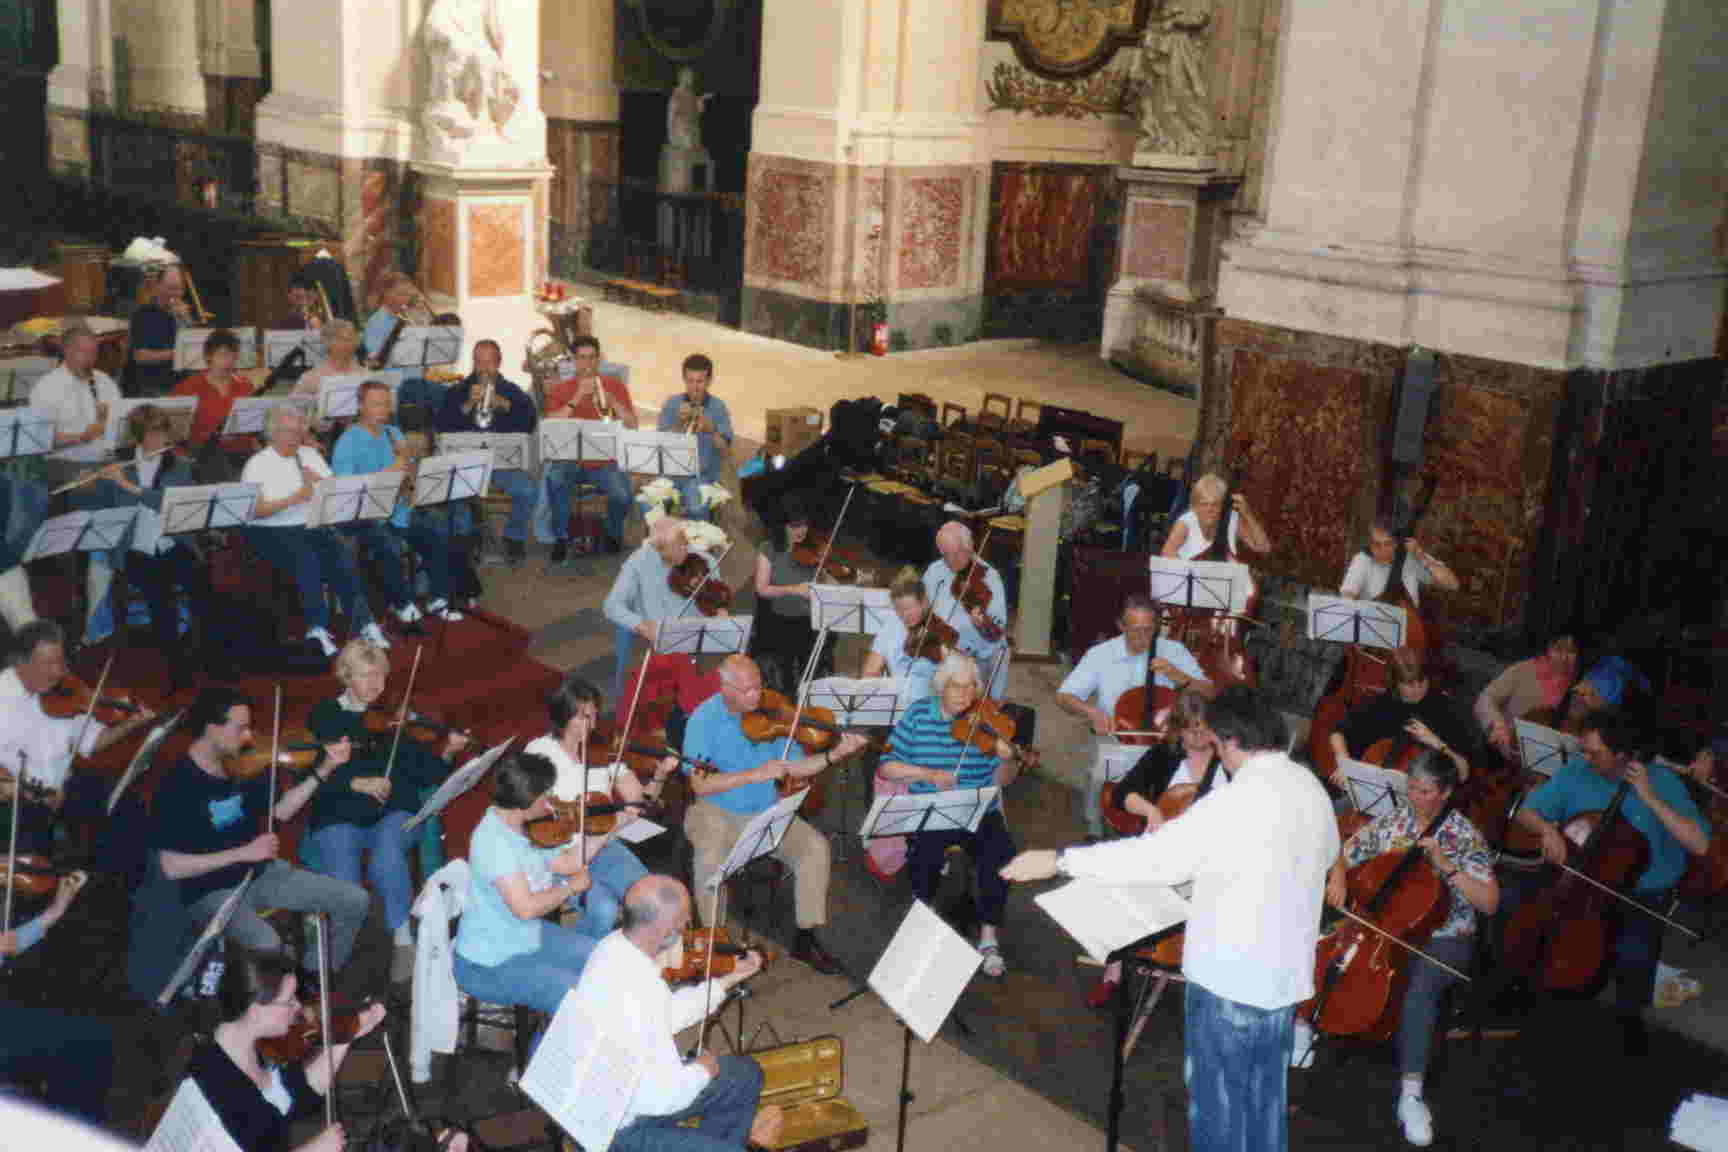 The orchestra rehearsing in St Roch